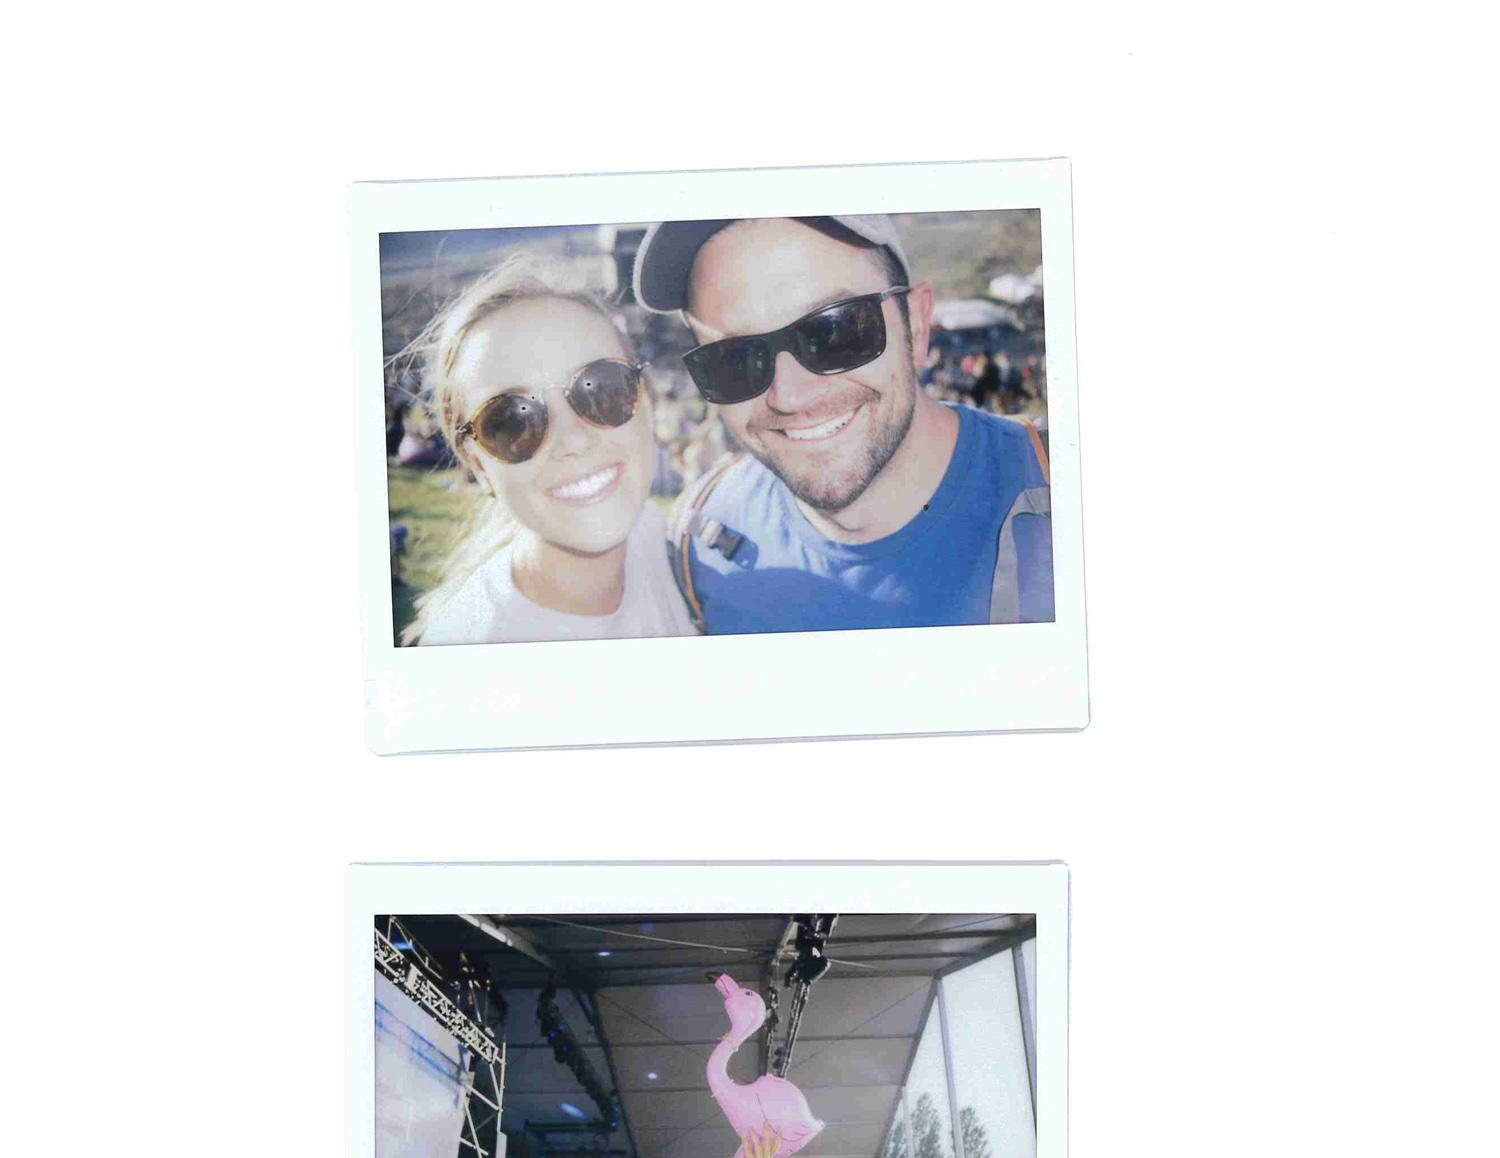 During the 2018 Sasquatch! Music Festival, our photographer Sy Bean brought along his Fujifilm Instax and snapped photos over the course of three days. We thought it would be fun to relive the weekend on film, so enjoy! (Sy Bean / Seattle Refined)